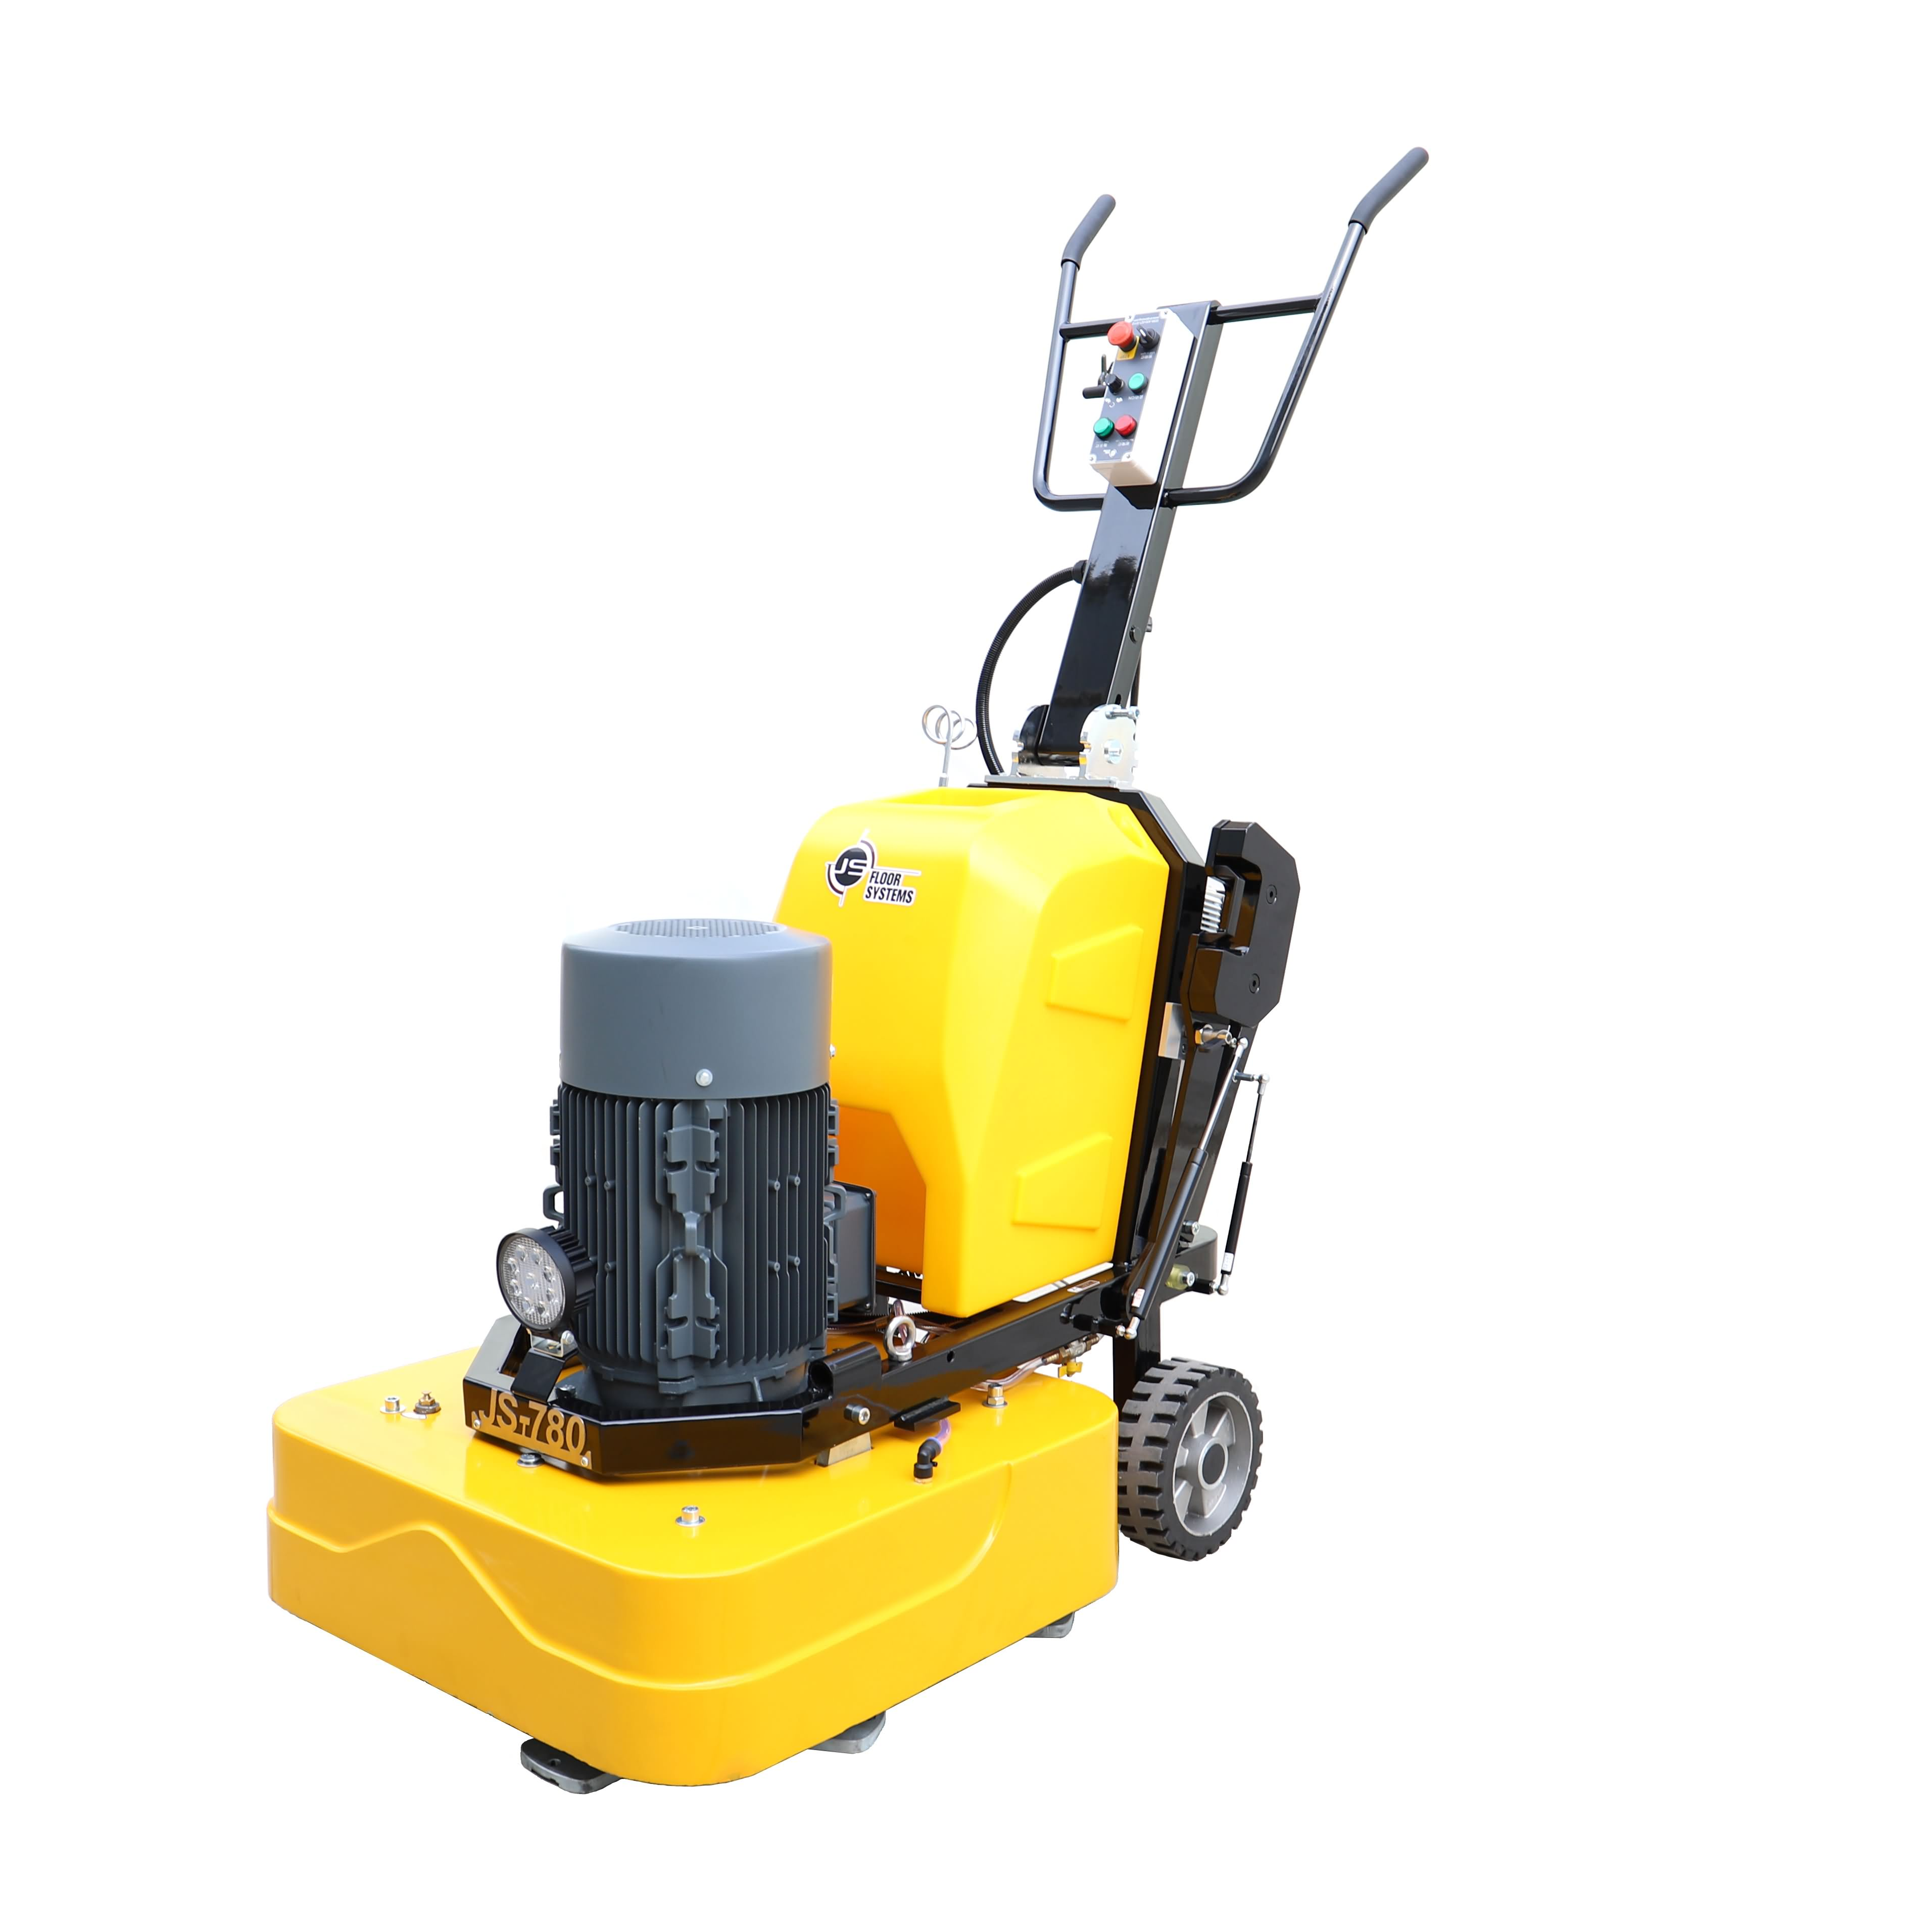 Concrete wet grinder and polisher